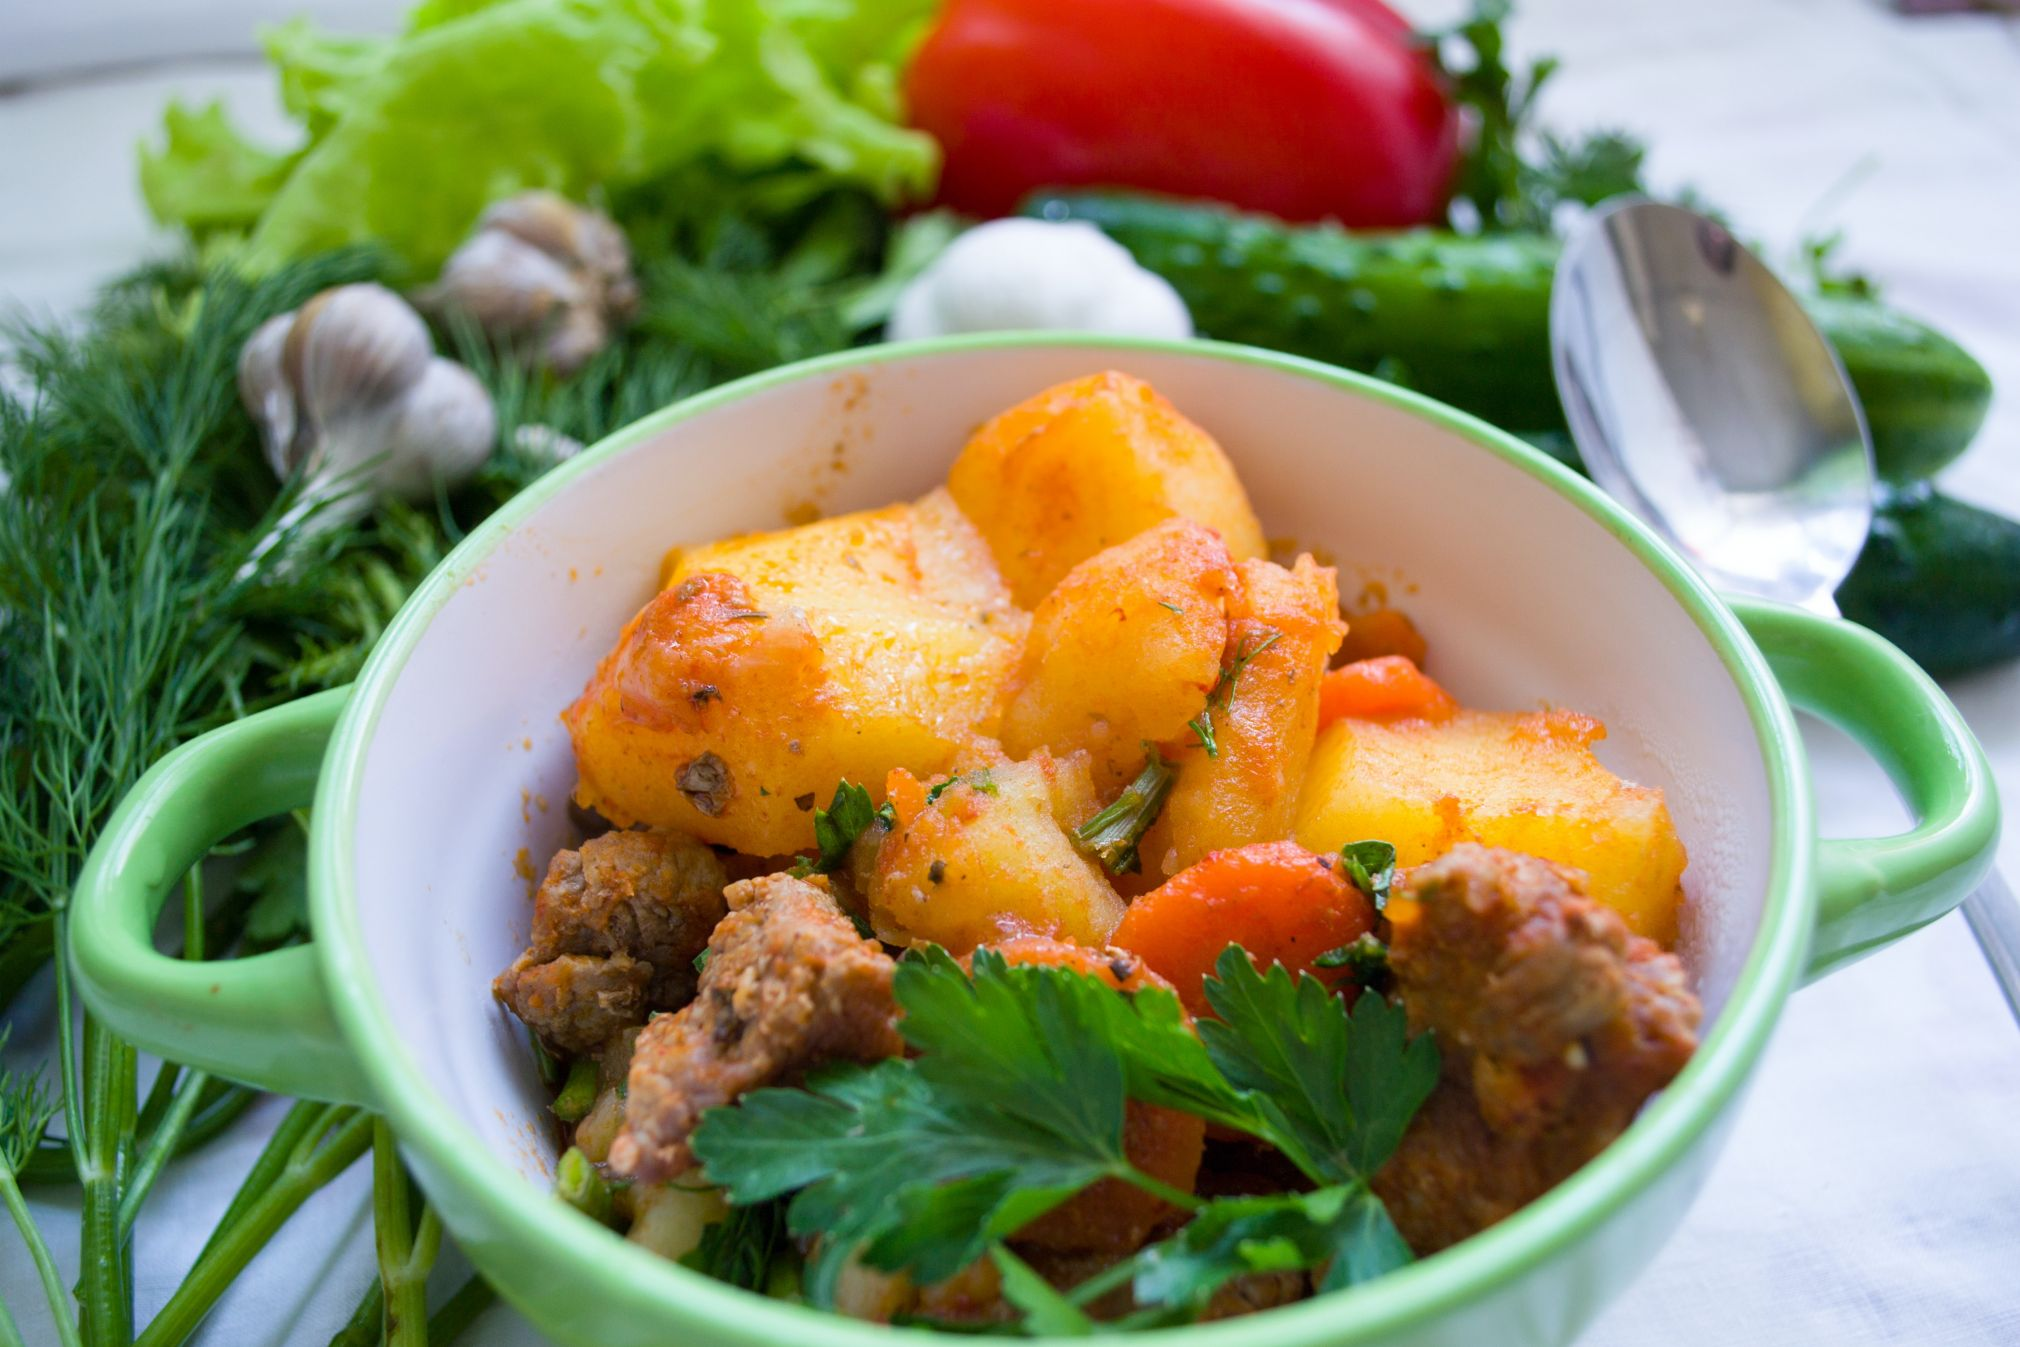 Prepare home-cooked meals to make sure your body gets all the nutrients and vitamins it needs.